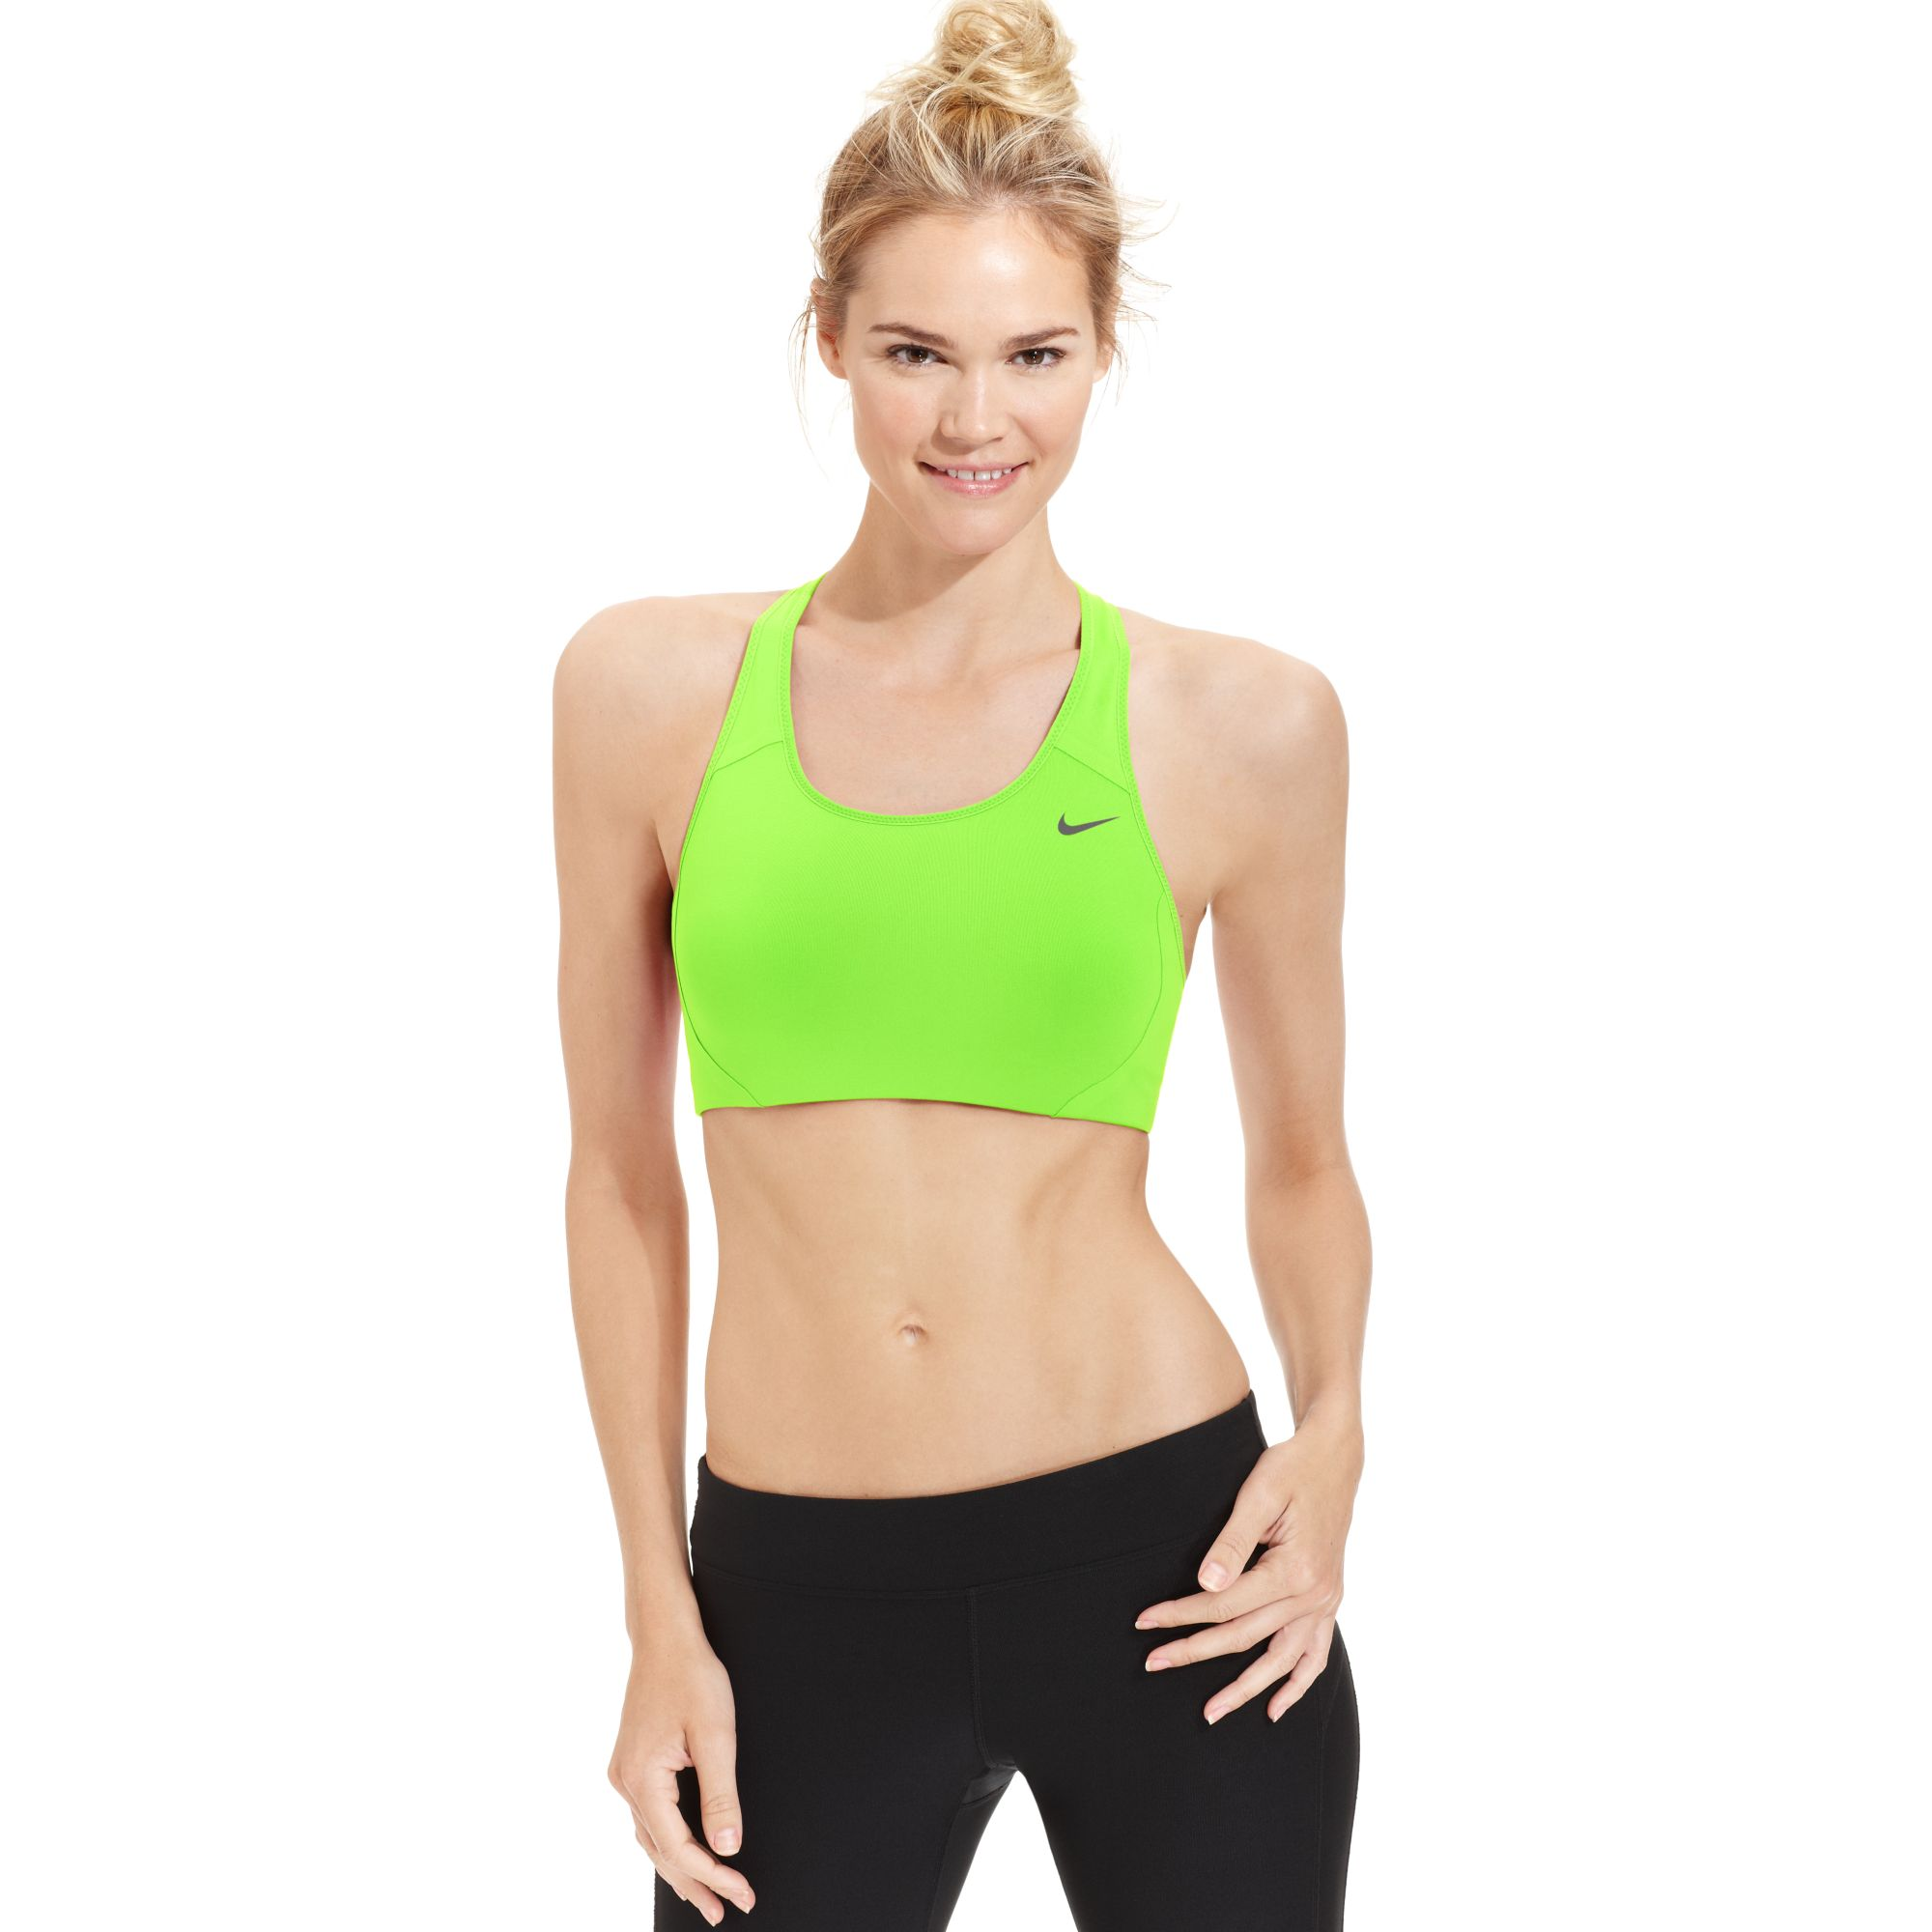 If you've been a loyal Nike fan since the days of cotton training bras, it's time to take a look at their Pro Hero sports bra. It's a great pick for HIIT workouts, thanks to Dri-FIT nylon fabric (it's a total game-changer), a compression fit, a hook closure, and molded cups minus the underwire.